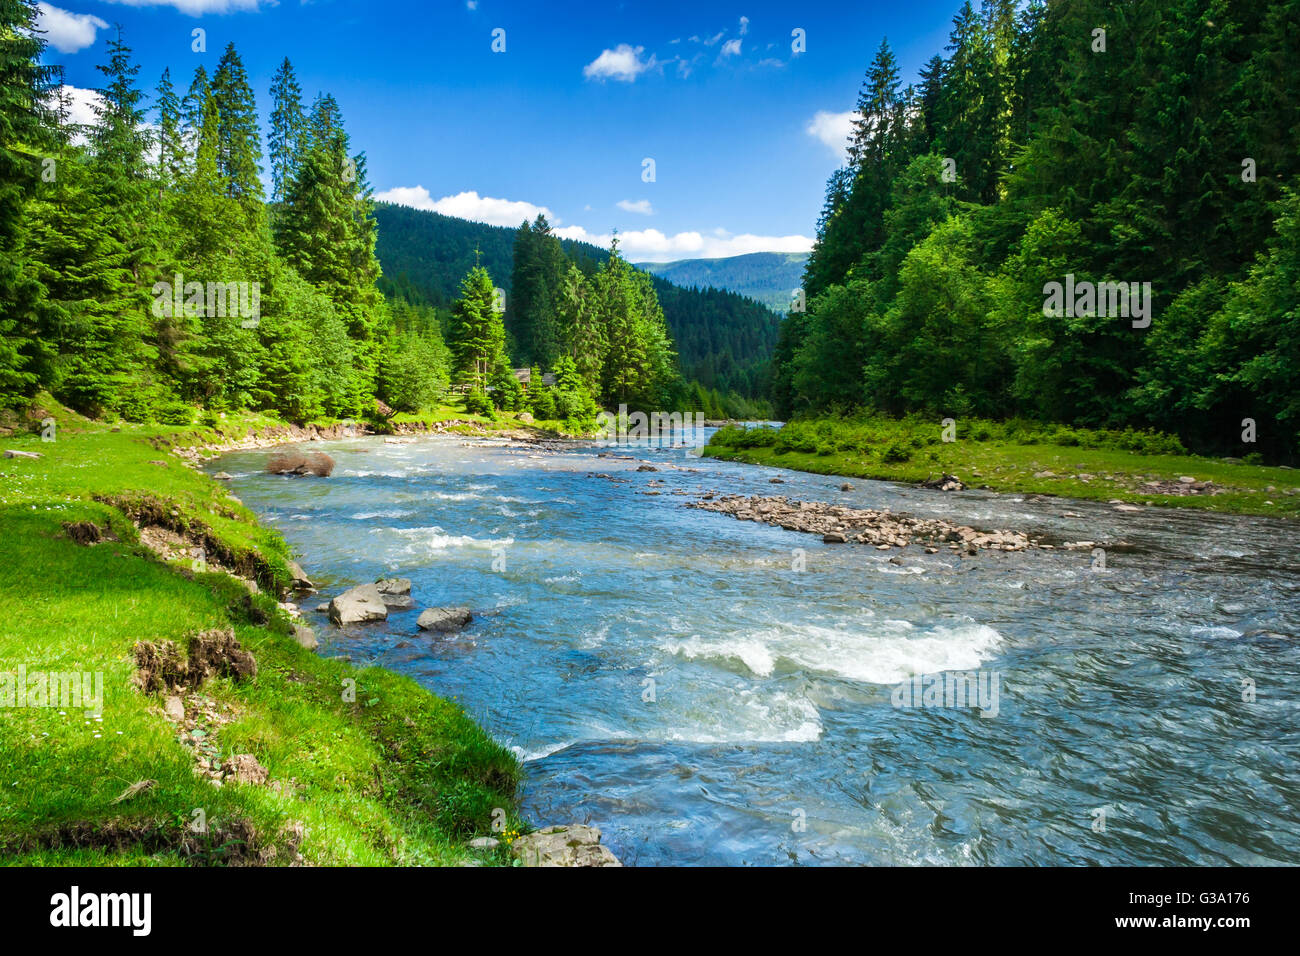 landscape with mountains trees and a river in front - Stock Image